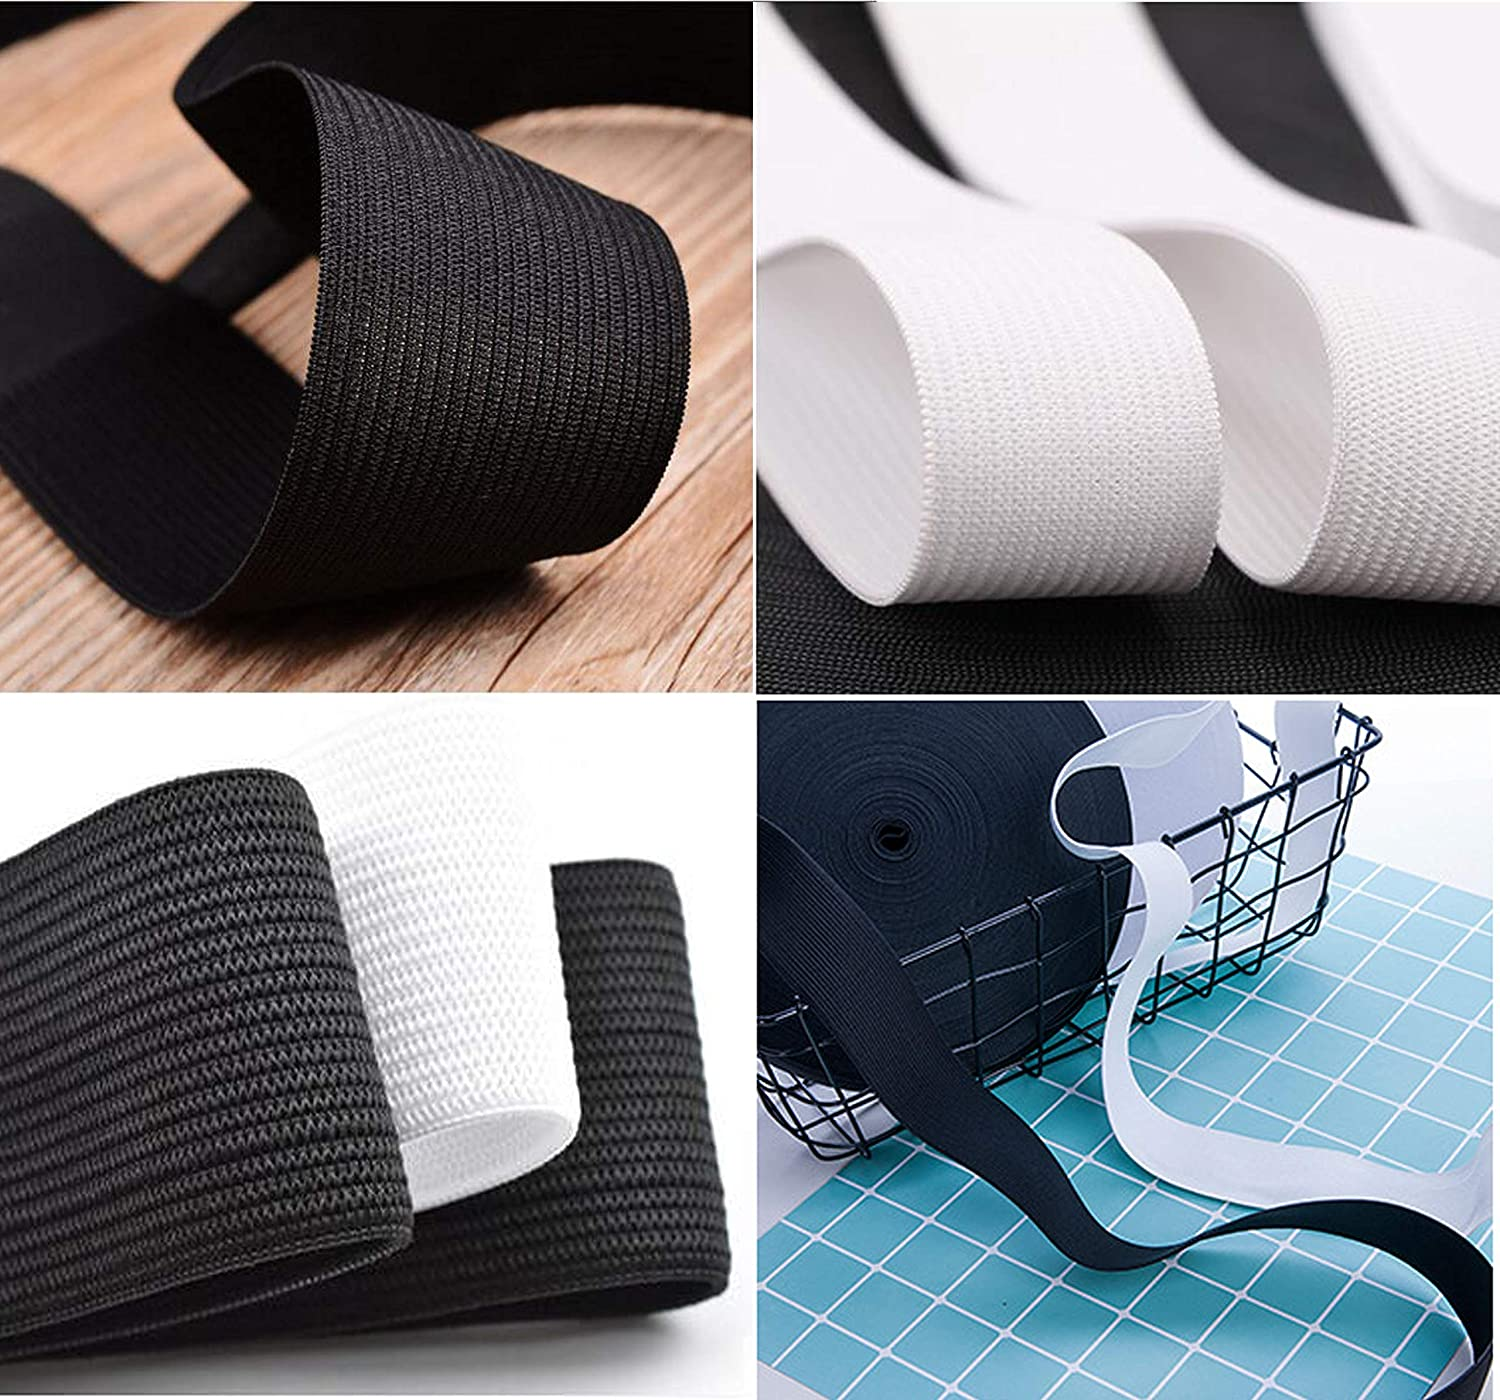 Black and White 5.5 Yard//Roll 1-1//2 inch Wide 1 inch 22 Yards Knit Elastic Spool 2 Color 2 Size 4 Rolls Heavy Stretch High Elasticity Sewing Elastic Band Cord for Wigs Pants Underwear DIY Craft